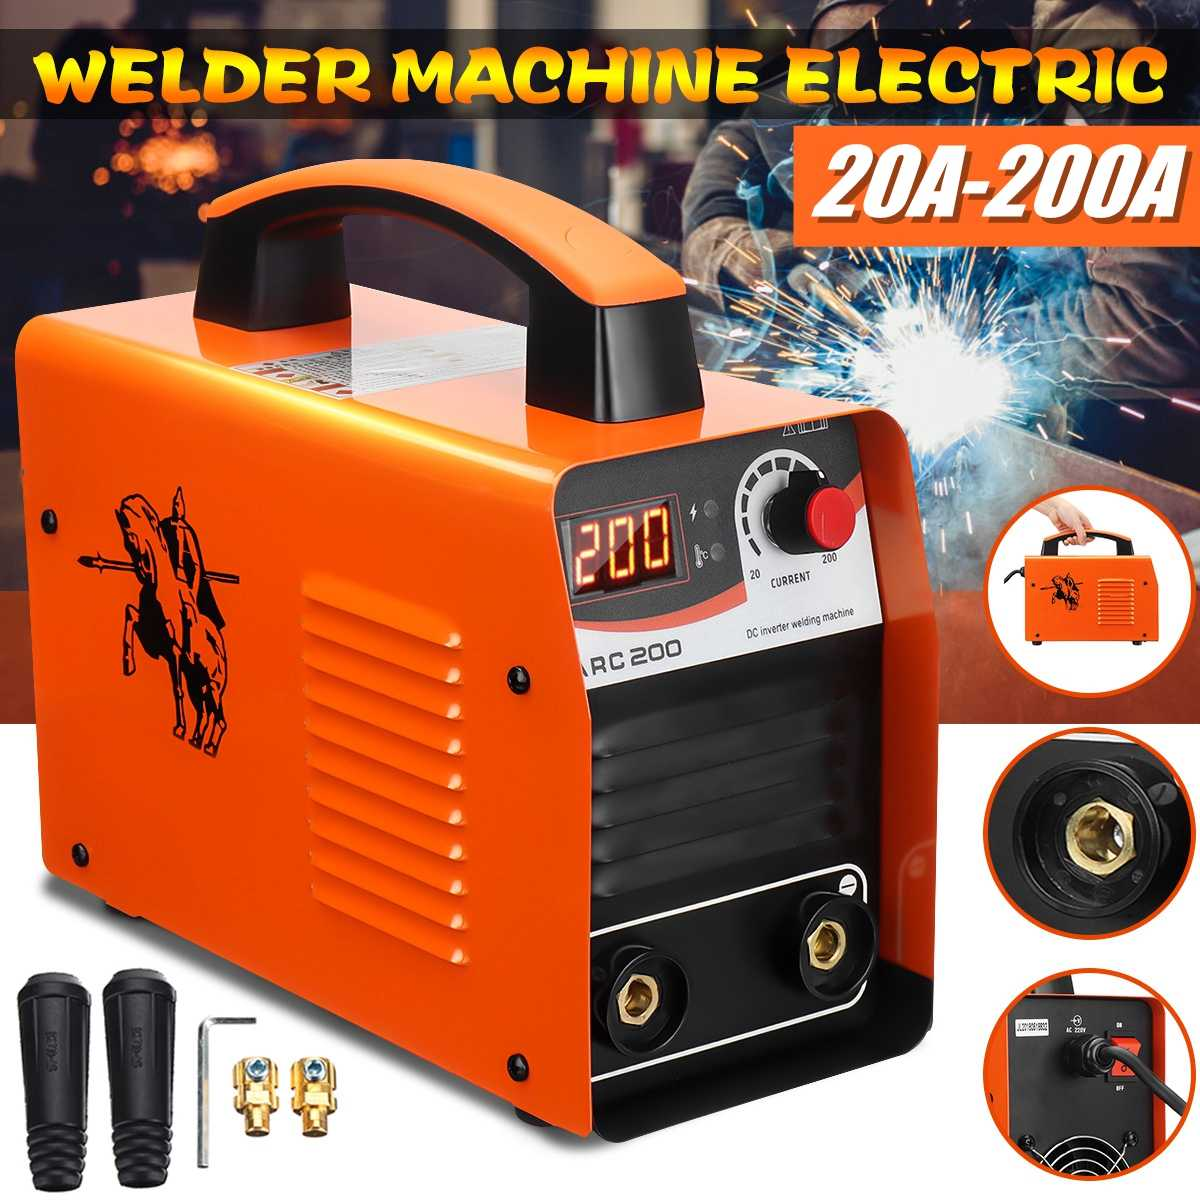 20-200A 25KVA IP21 Inverter Arc Electric Welding Machine IGBT/MMA/ARC/ZX7 Welder for Welding Working and Electric Working20-200A 25KVA IP21 Inverter Arc Electric Welding Machine IGBT/MMA/ARC/ZX7 Welder for Welding Working and Electric Working